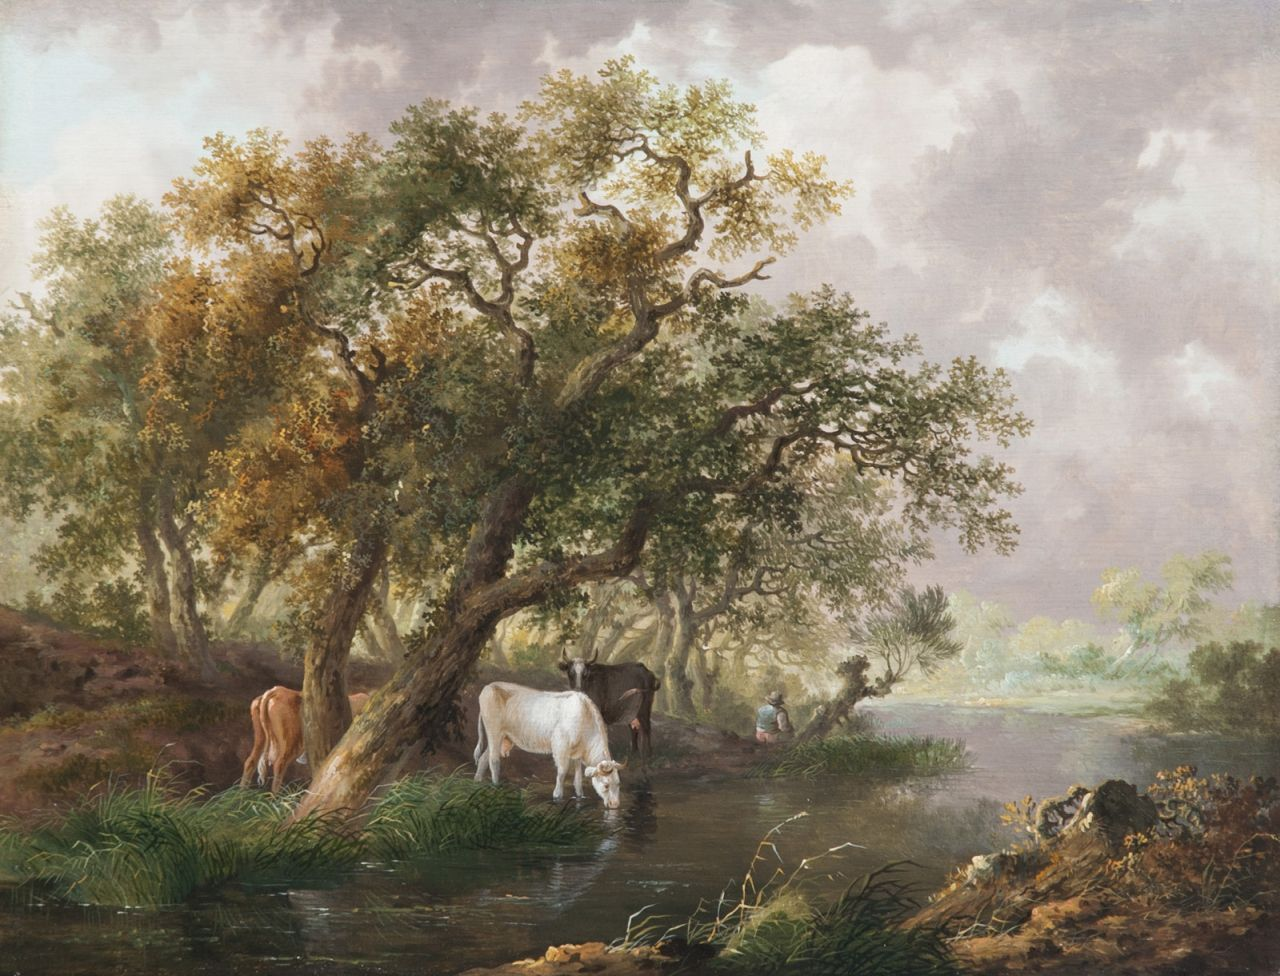 Fredericus Theodorus Renard | Cattle watering by a wooded river, oil on panel, 26.5 x 34.3 cm, signed (vague) on a label on the reverse and painted ca. 1815